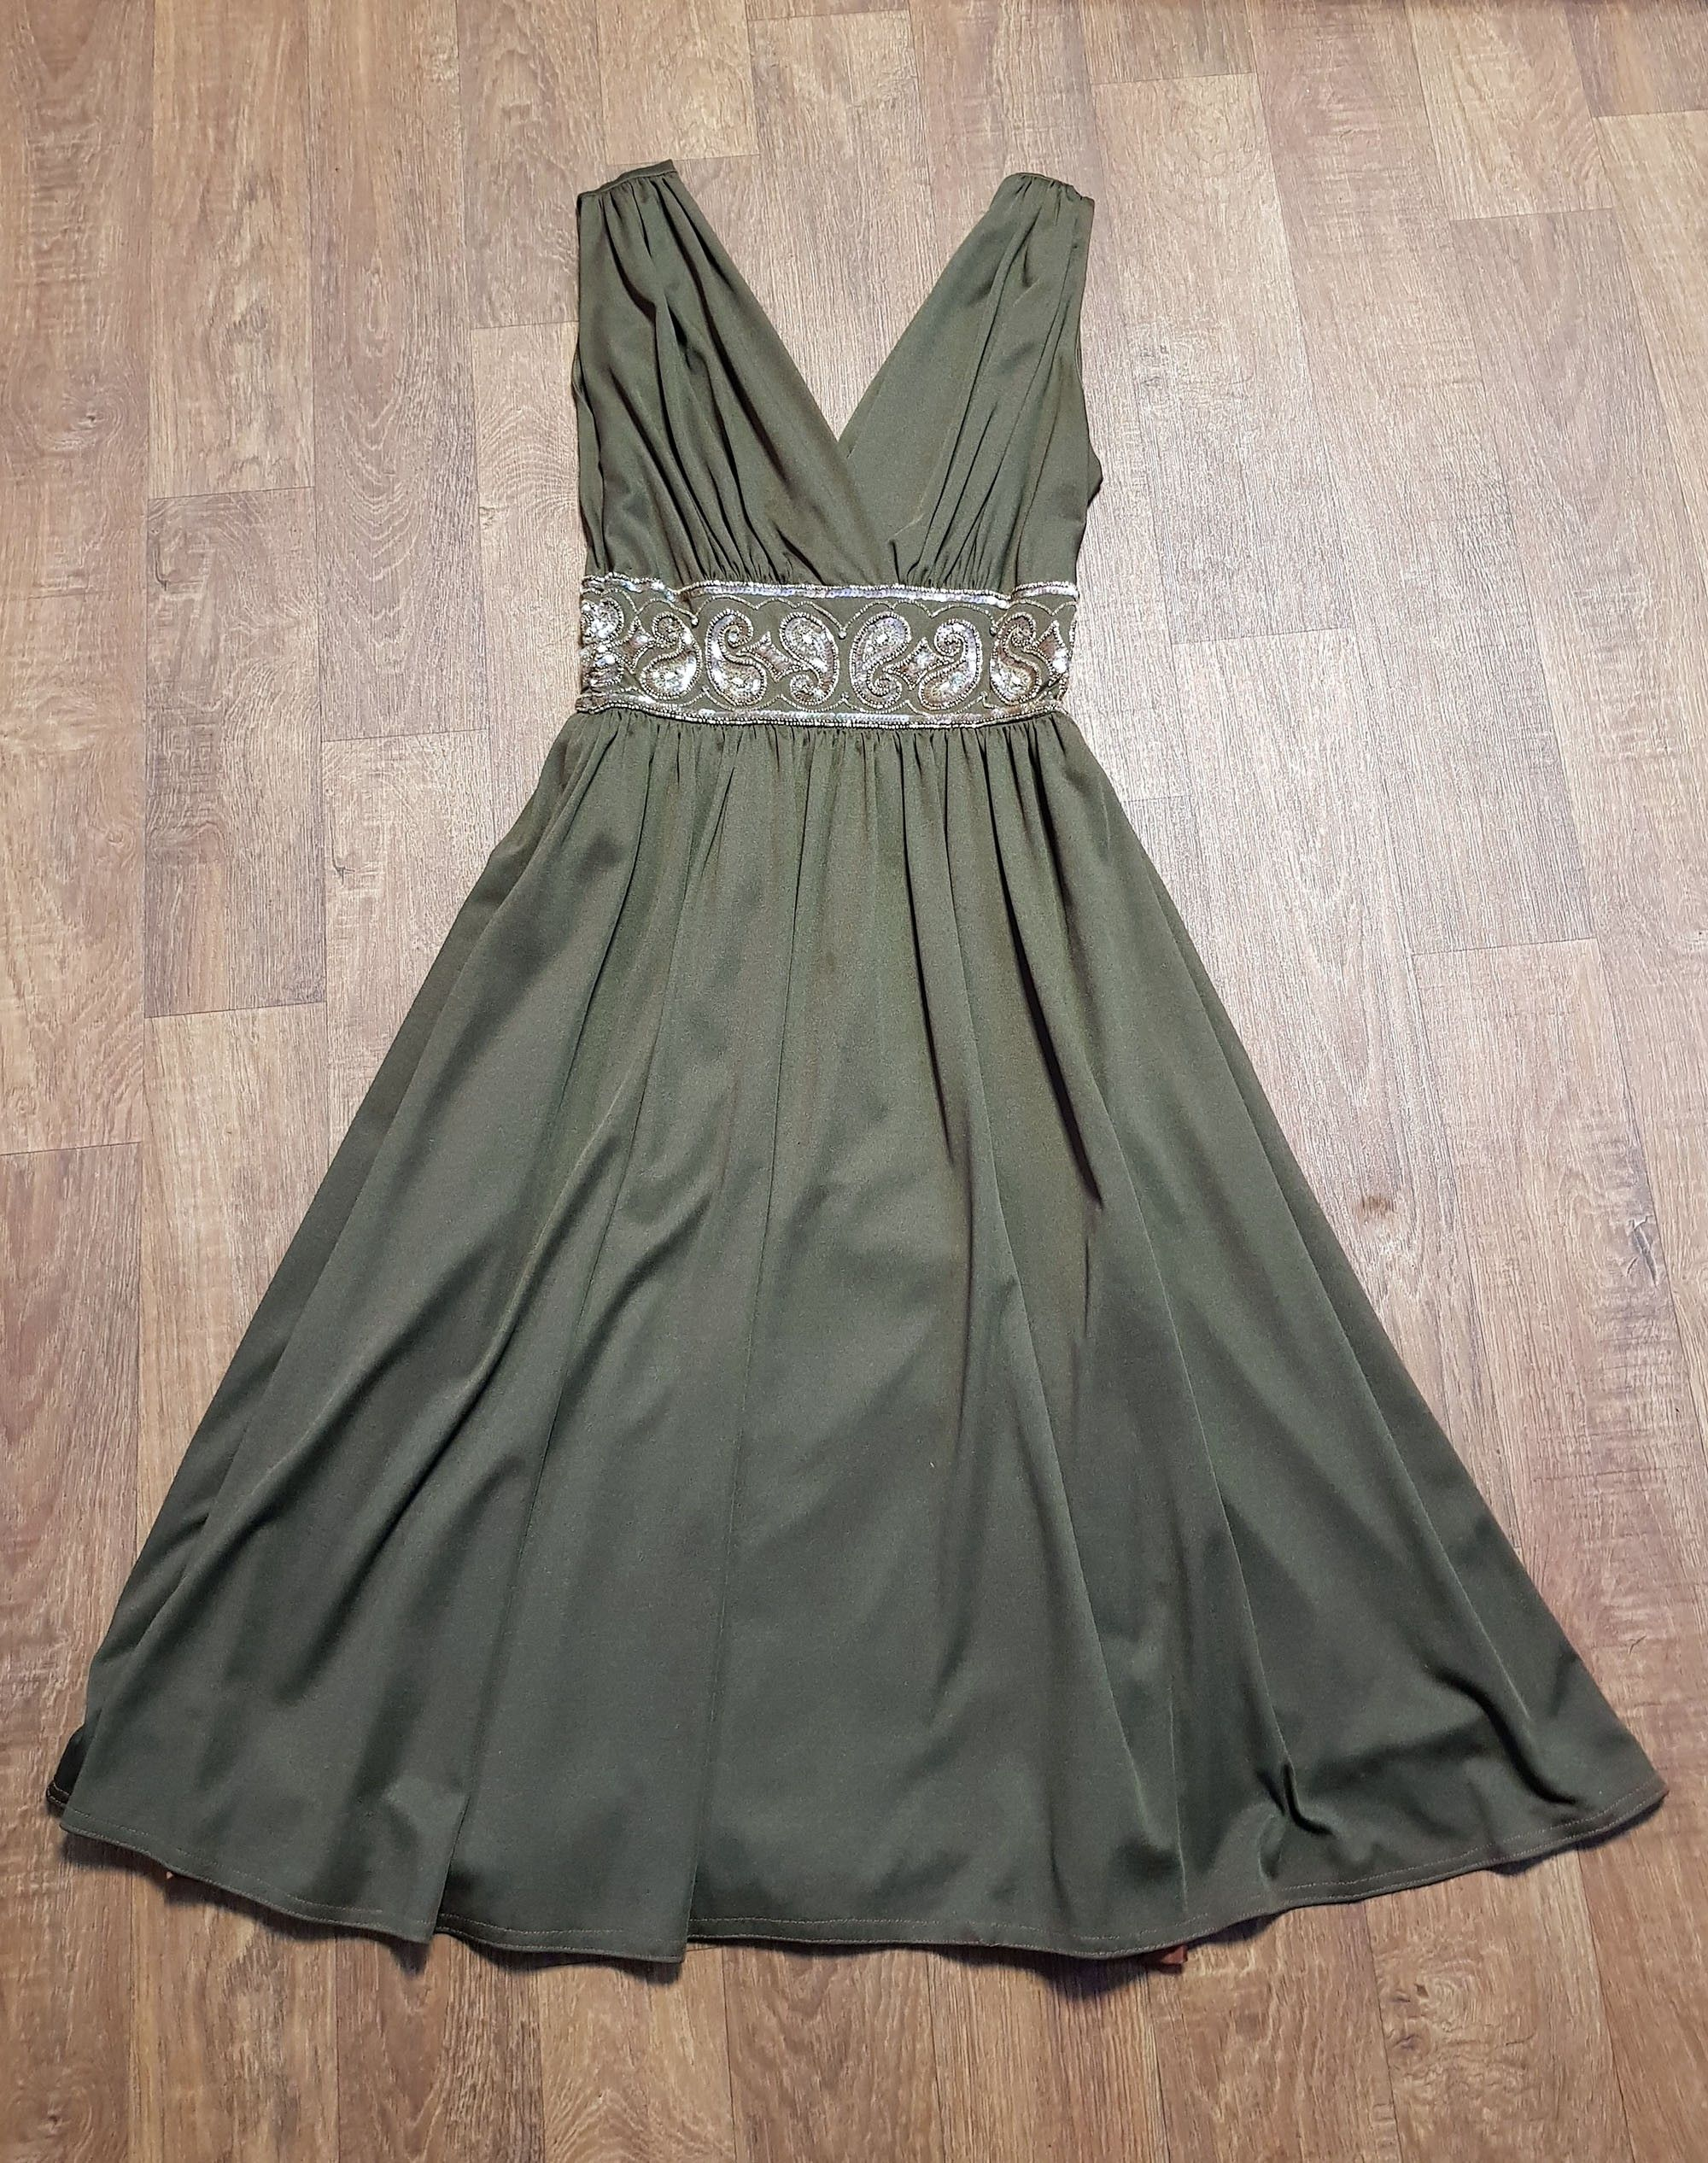 1970s Vintage Brown Sequin Plunge Party/Prom Dress UK Size 10